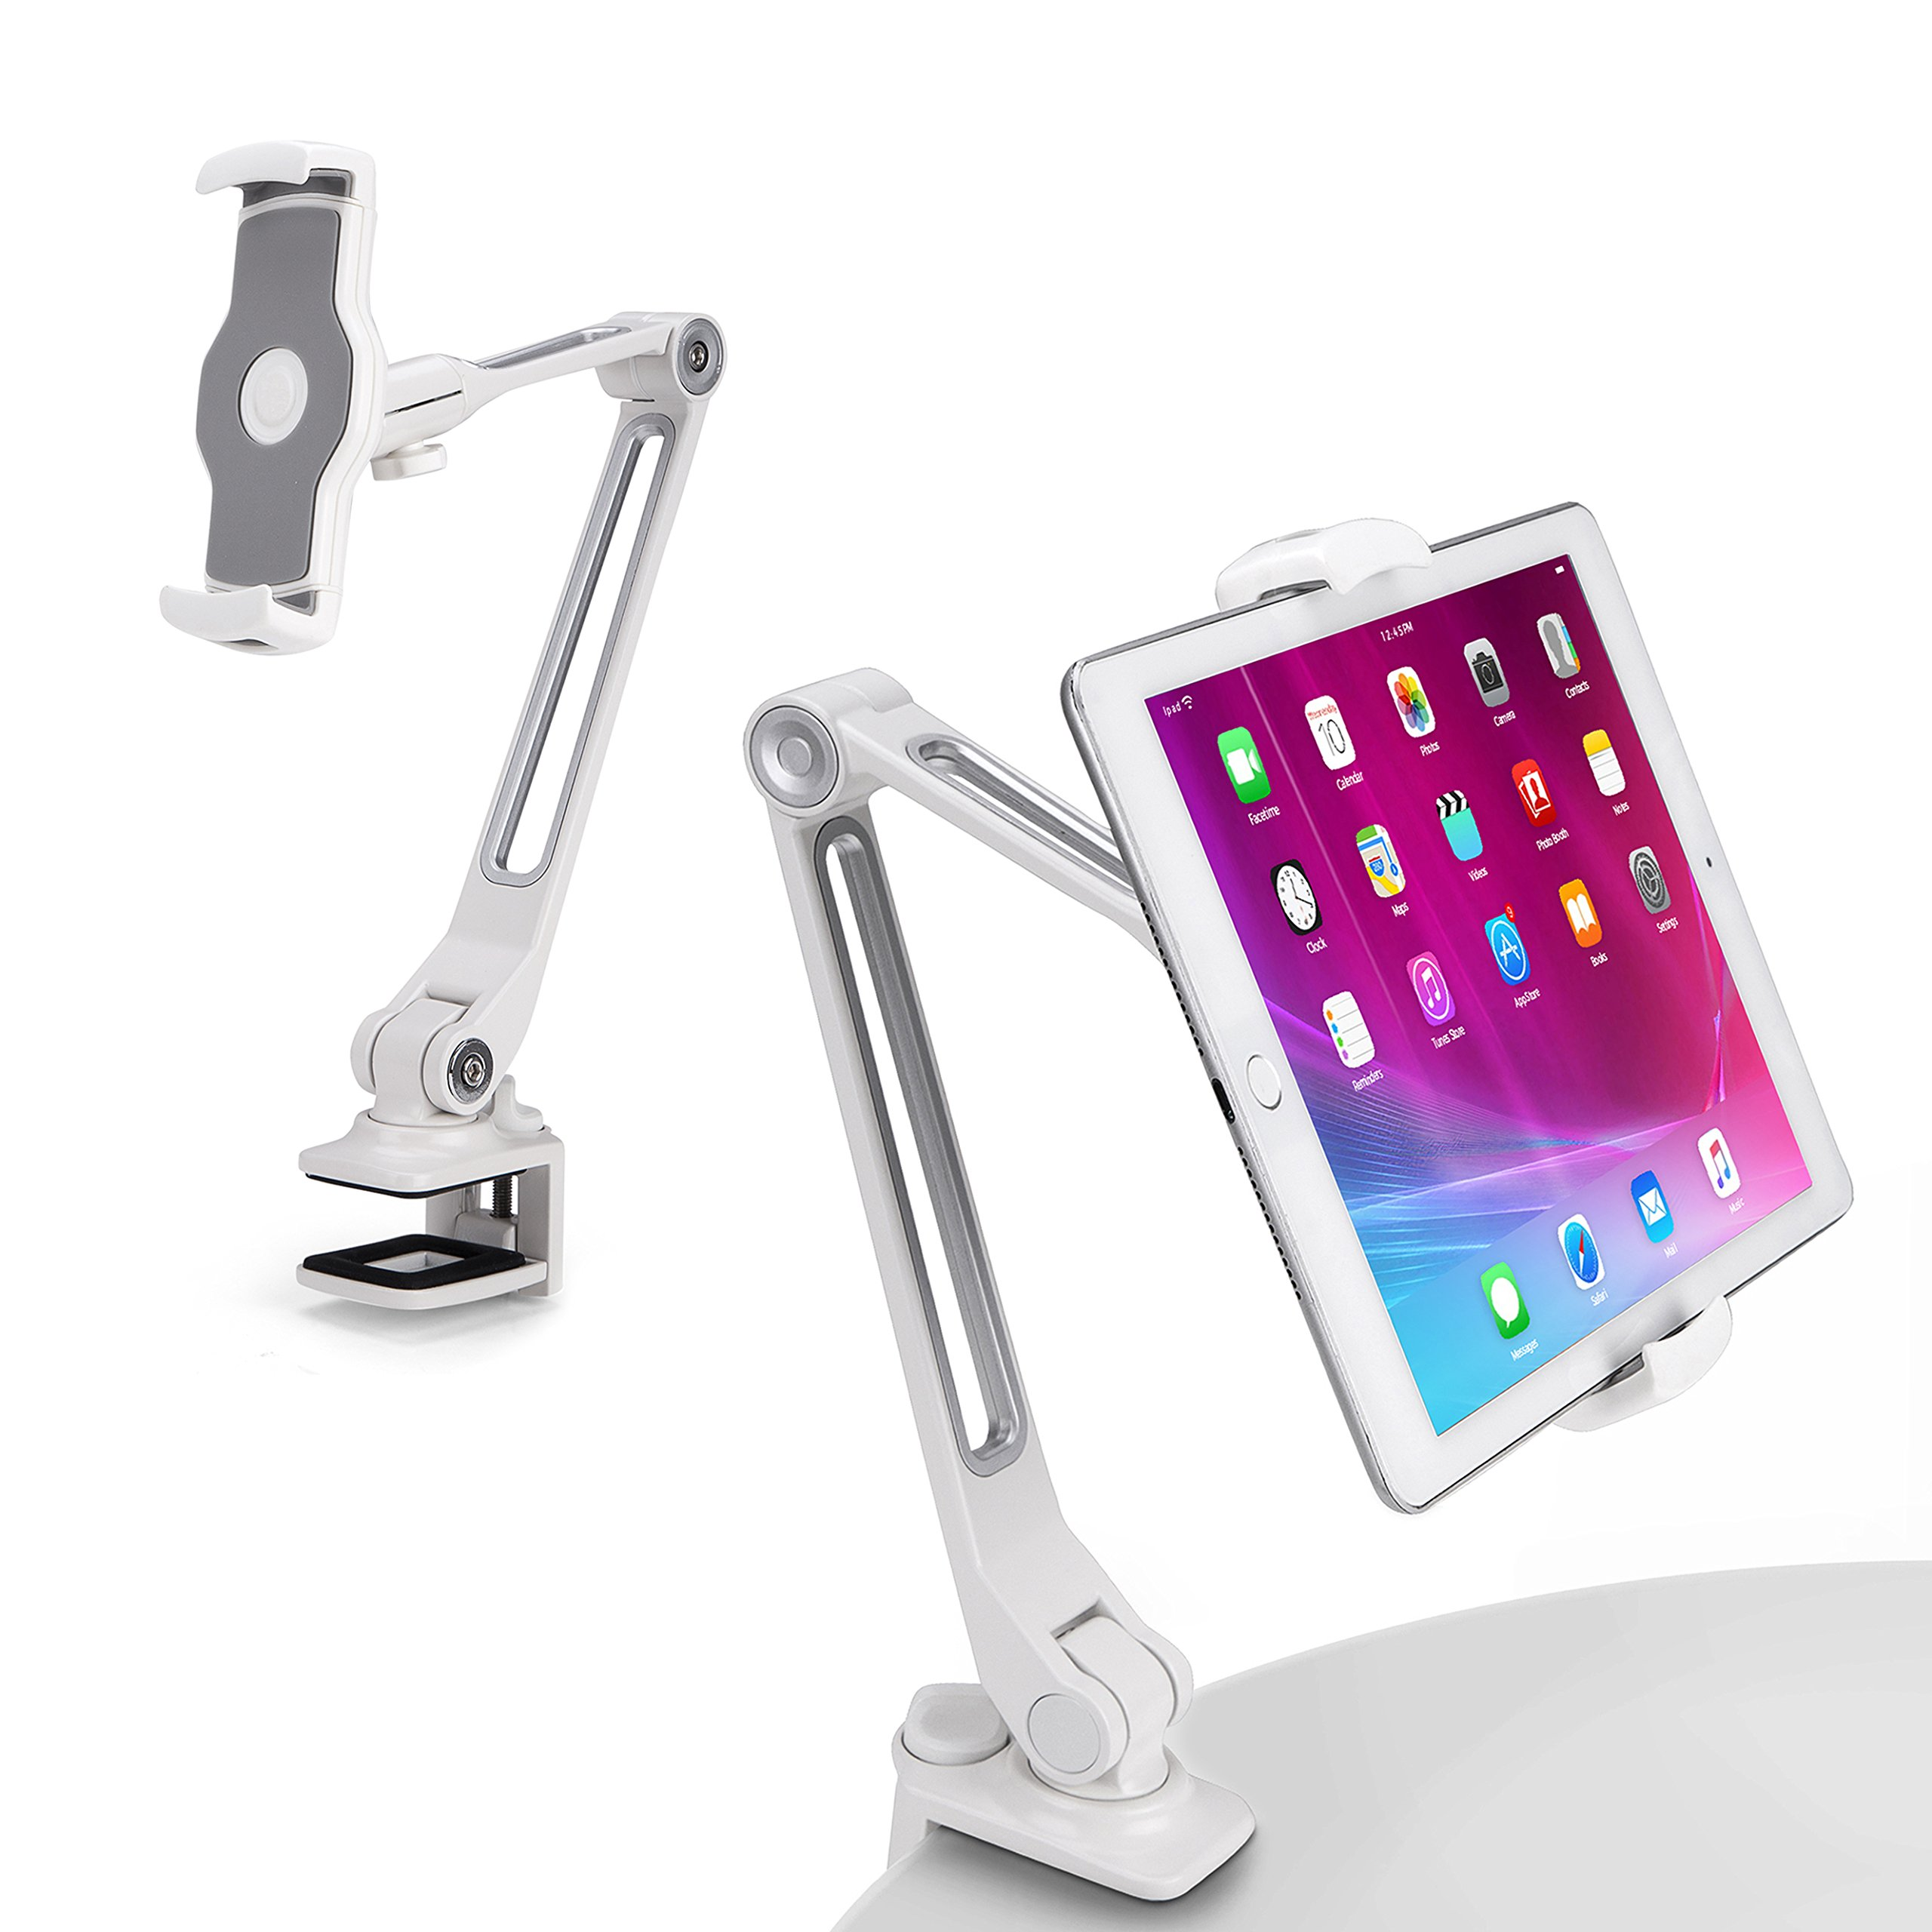 AboveTEK Sturdy iPad Holder, Aluminum Long Arm iPad Tablet Mount, 360° Swivel Tablet Stand & Phone Holder with Bracket Cradle Clamps 4-11'' Devices for Kitchen Bedside Office Desk Showcase Display by AboveTEK